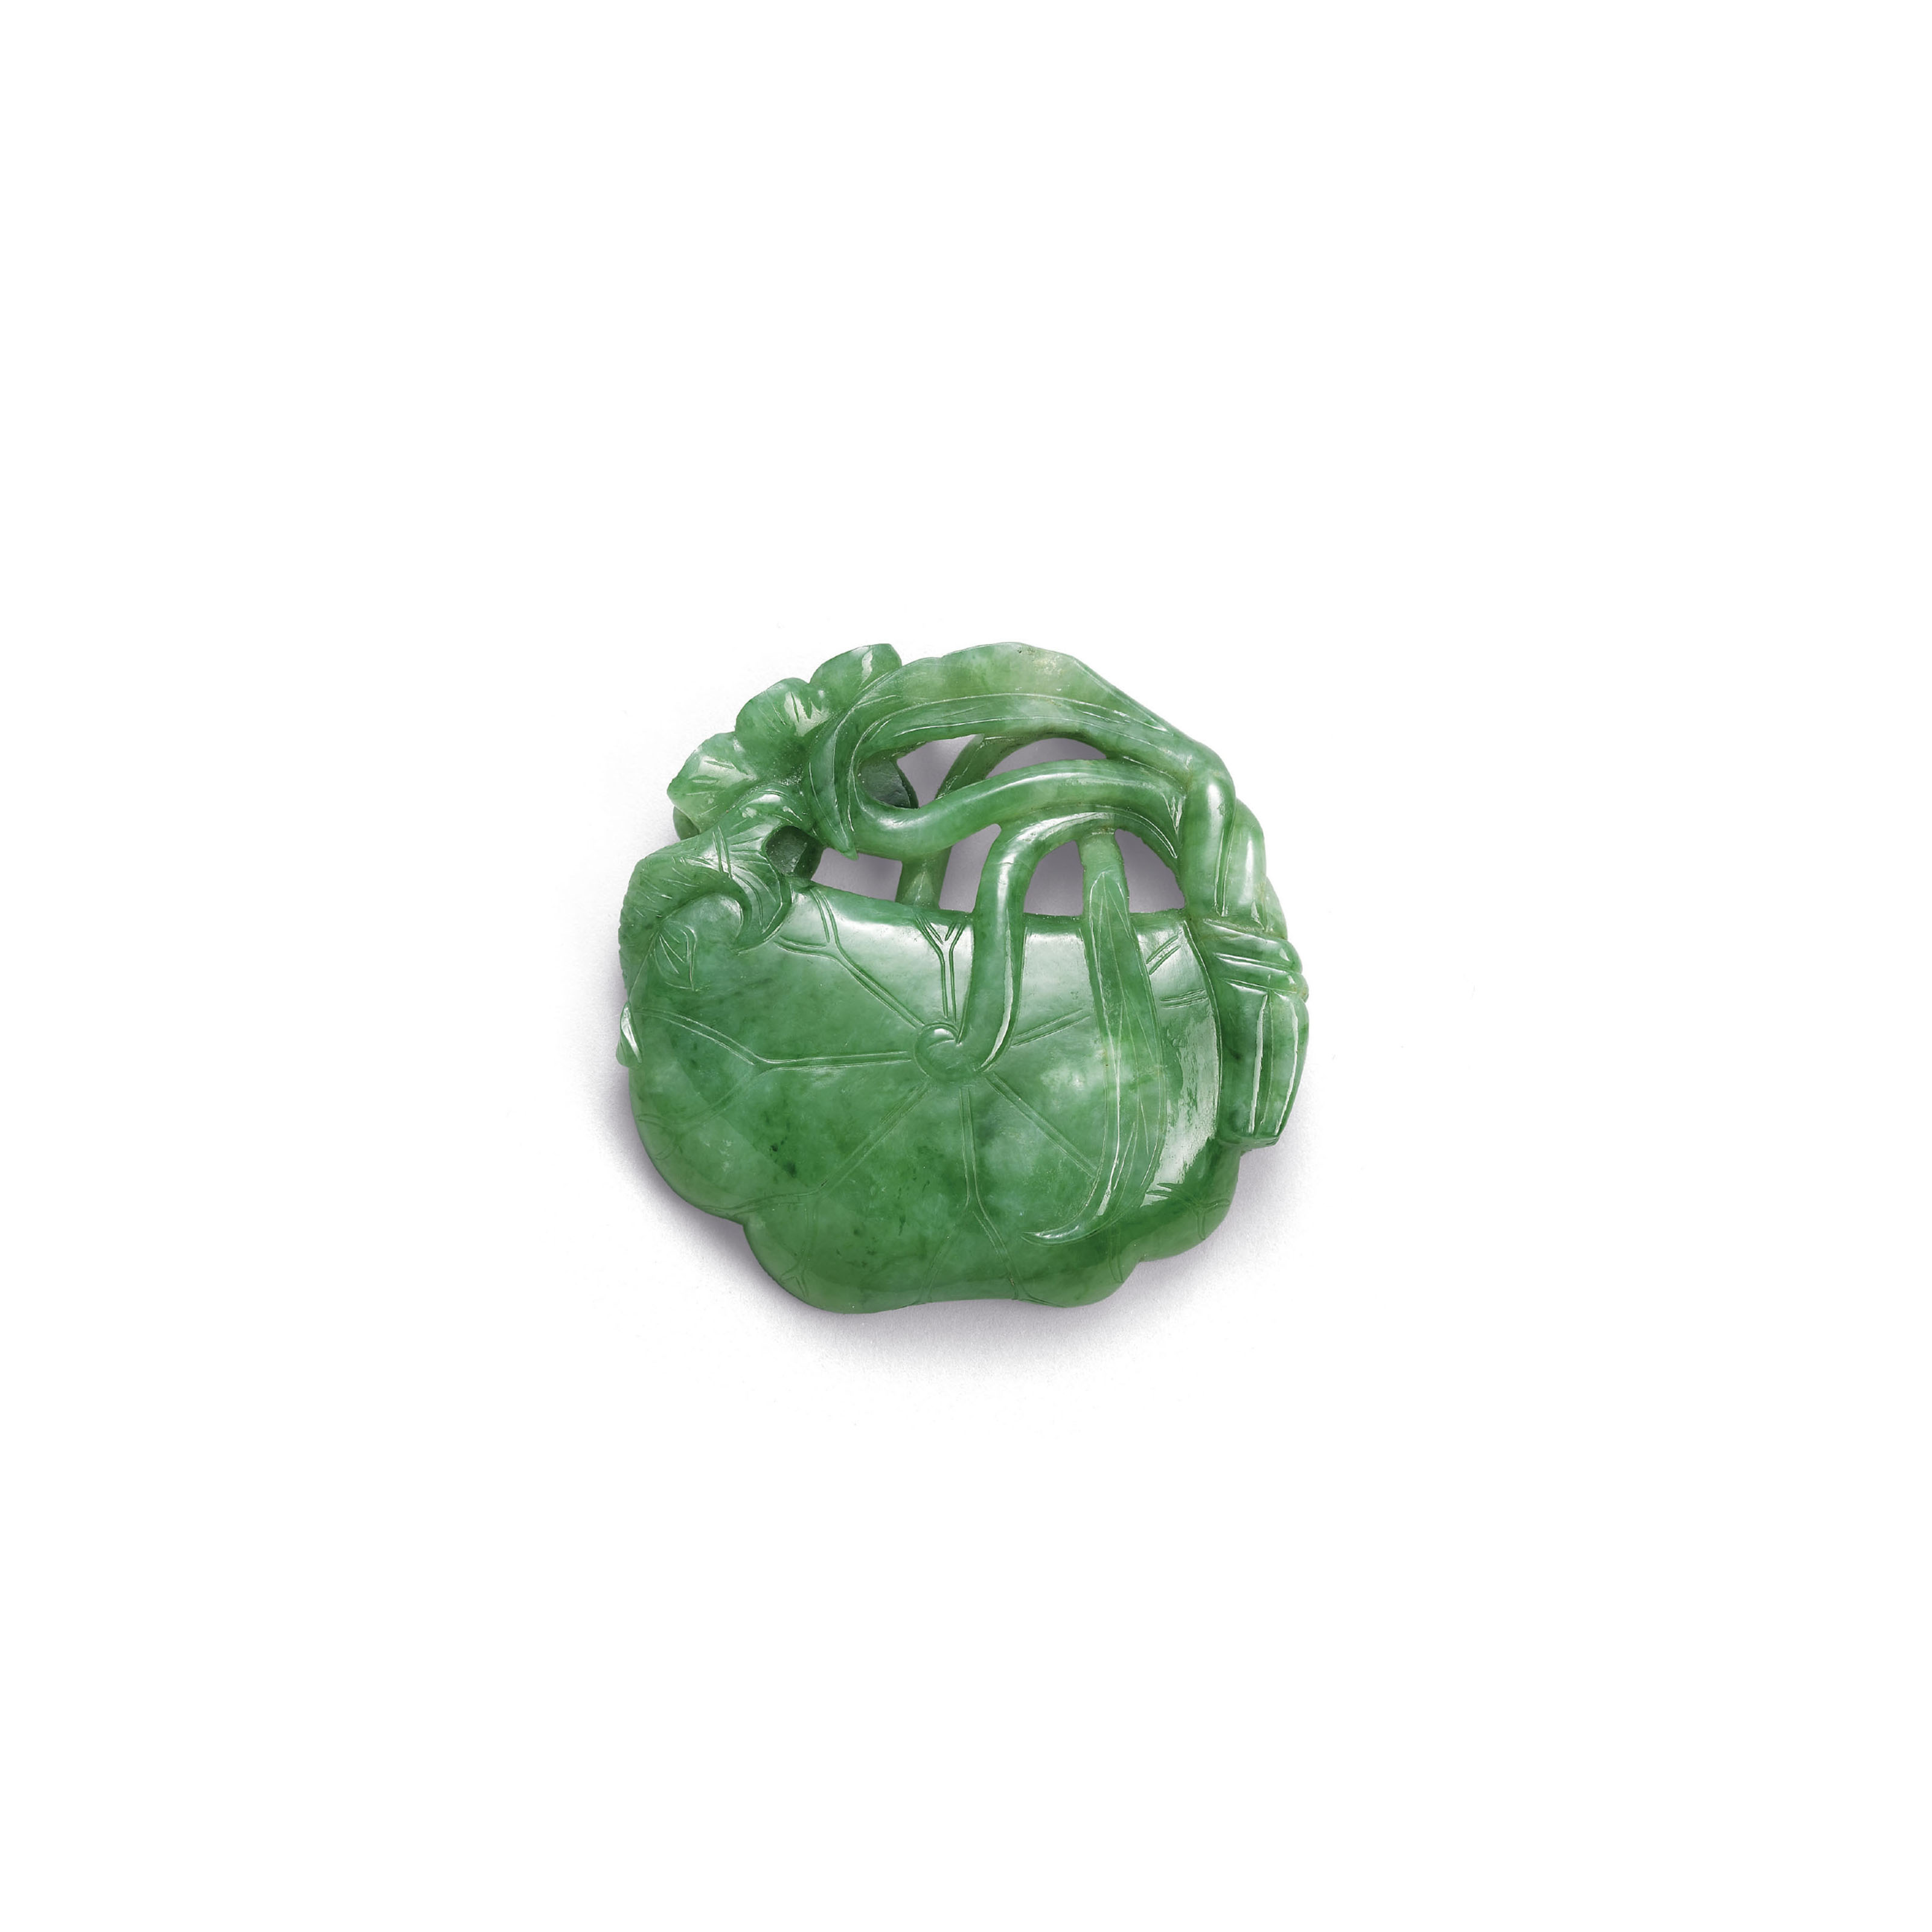 A SMALL JADEITE LOTUS LEAF-FOR